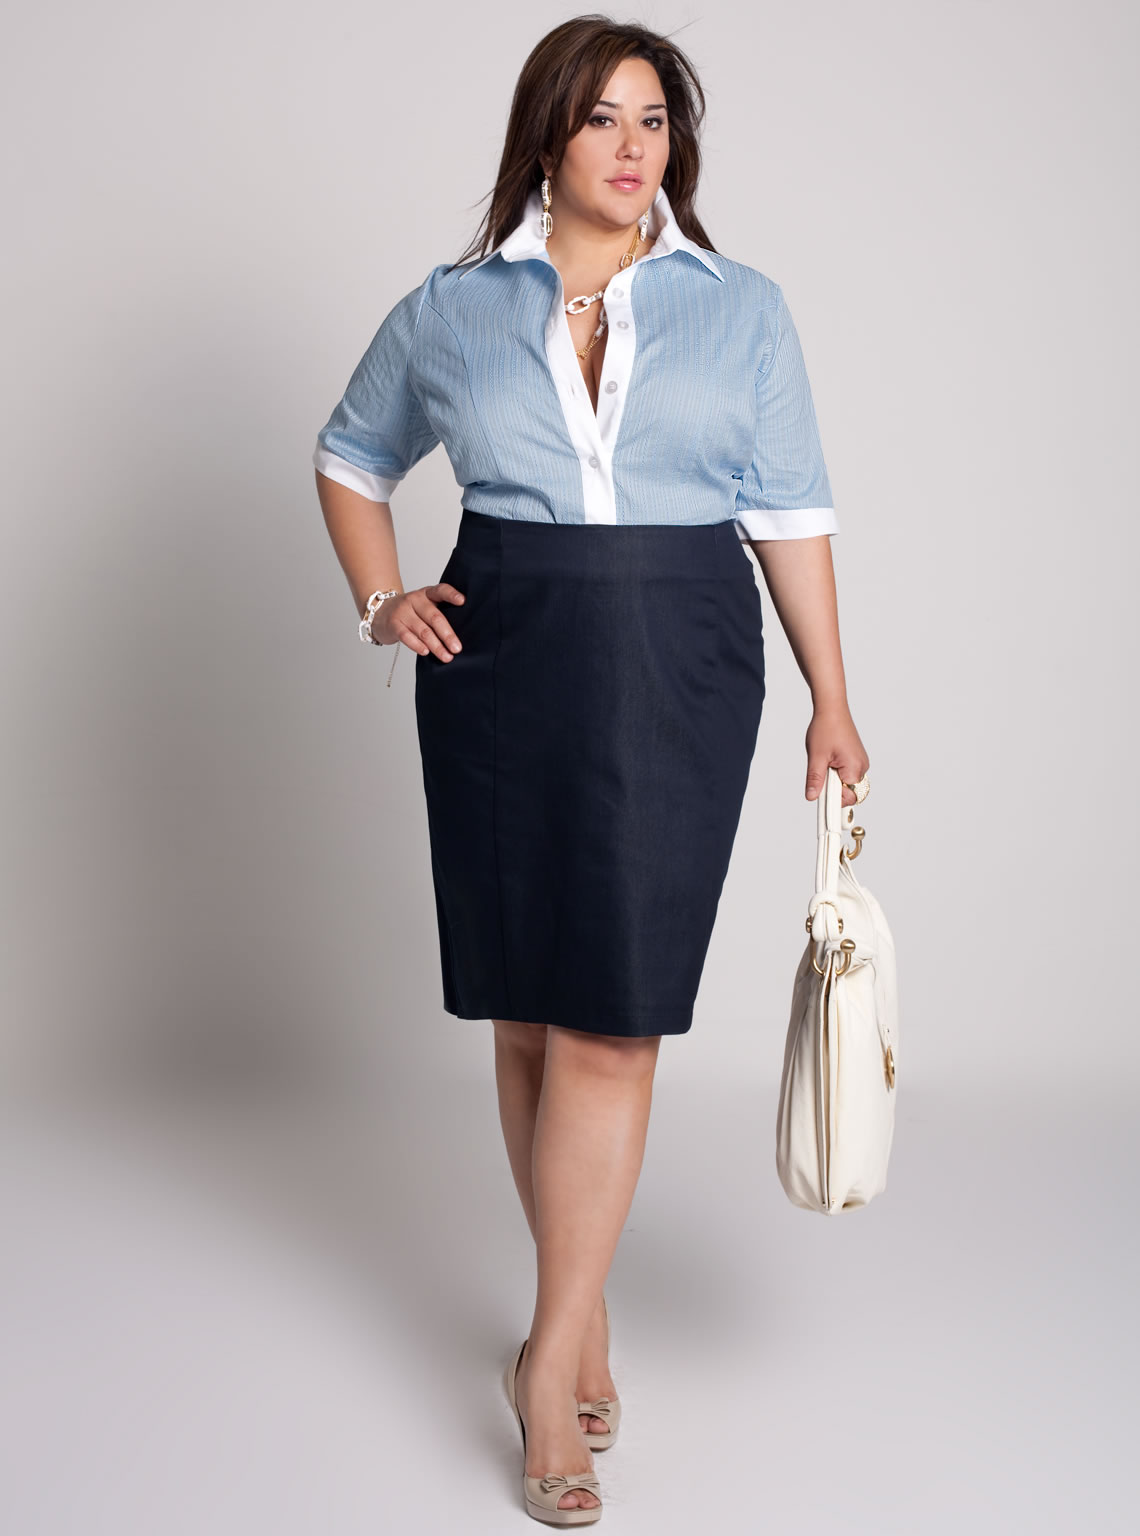 Plus Size Clothing for girls at Macy's comes in all styles & colors. Buy girls plus size clothes at Macy's! Free shipping: Macy's Star Rewards Members!